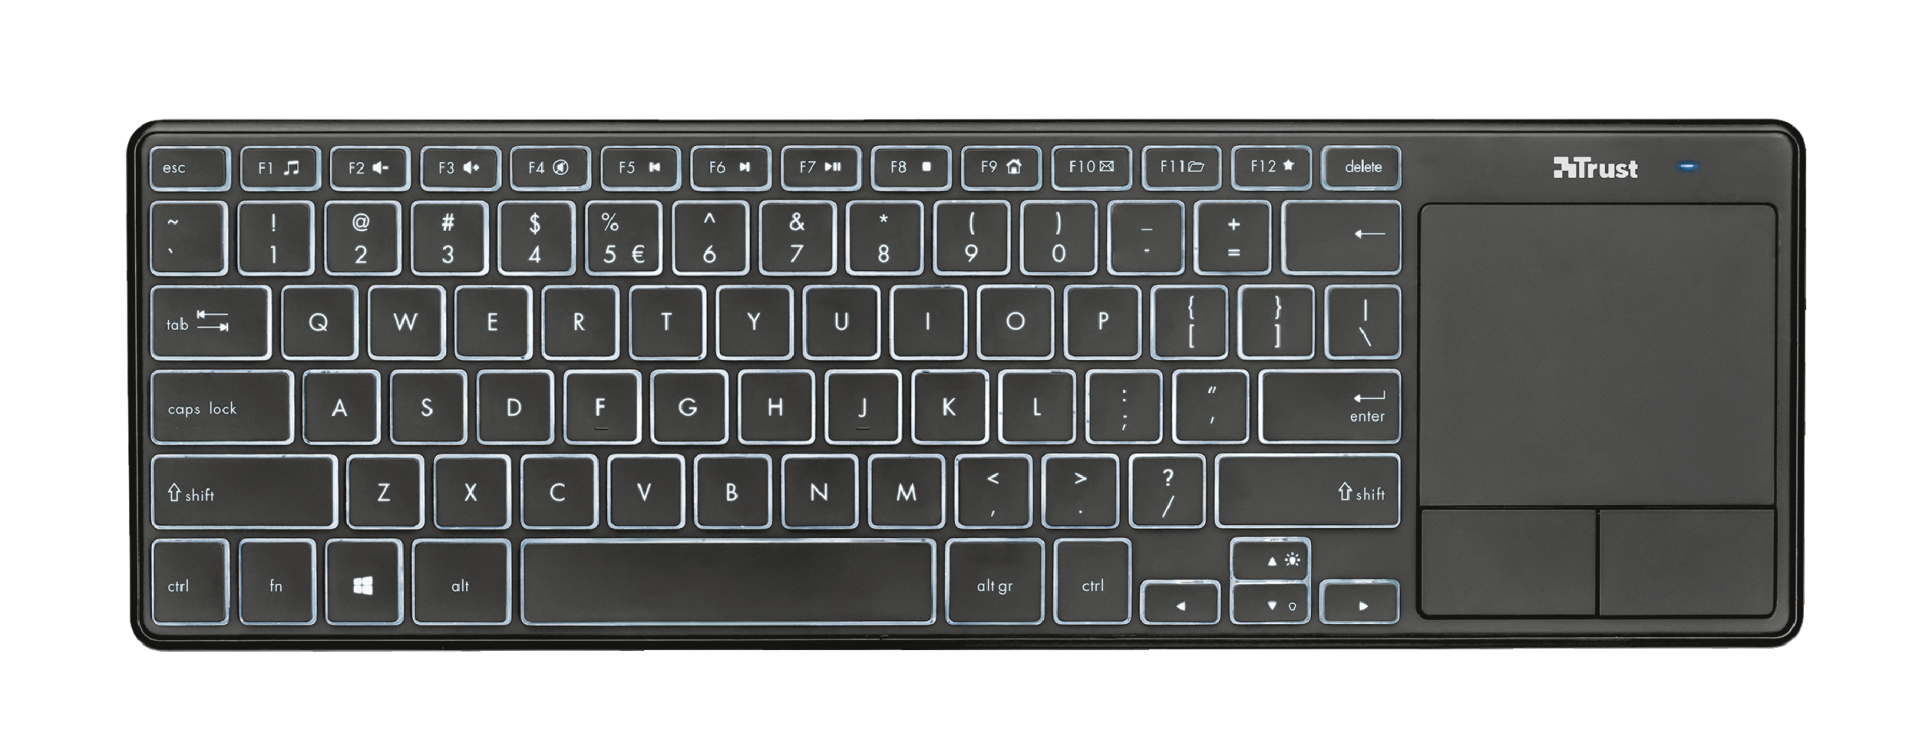 Theza Wireless Keyboard with touchpad-Top